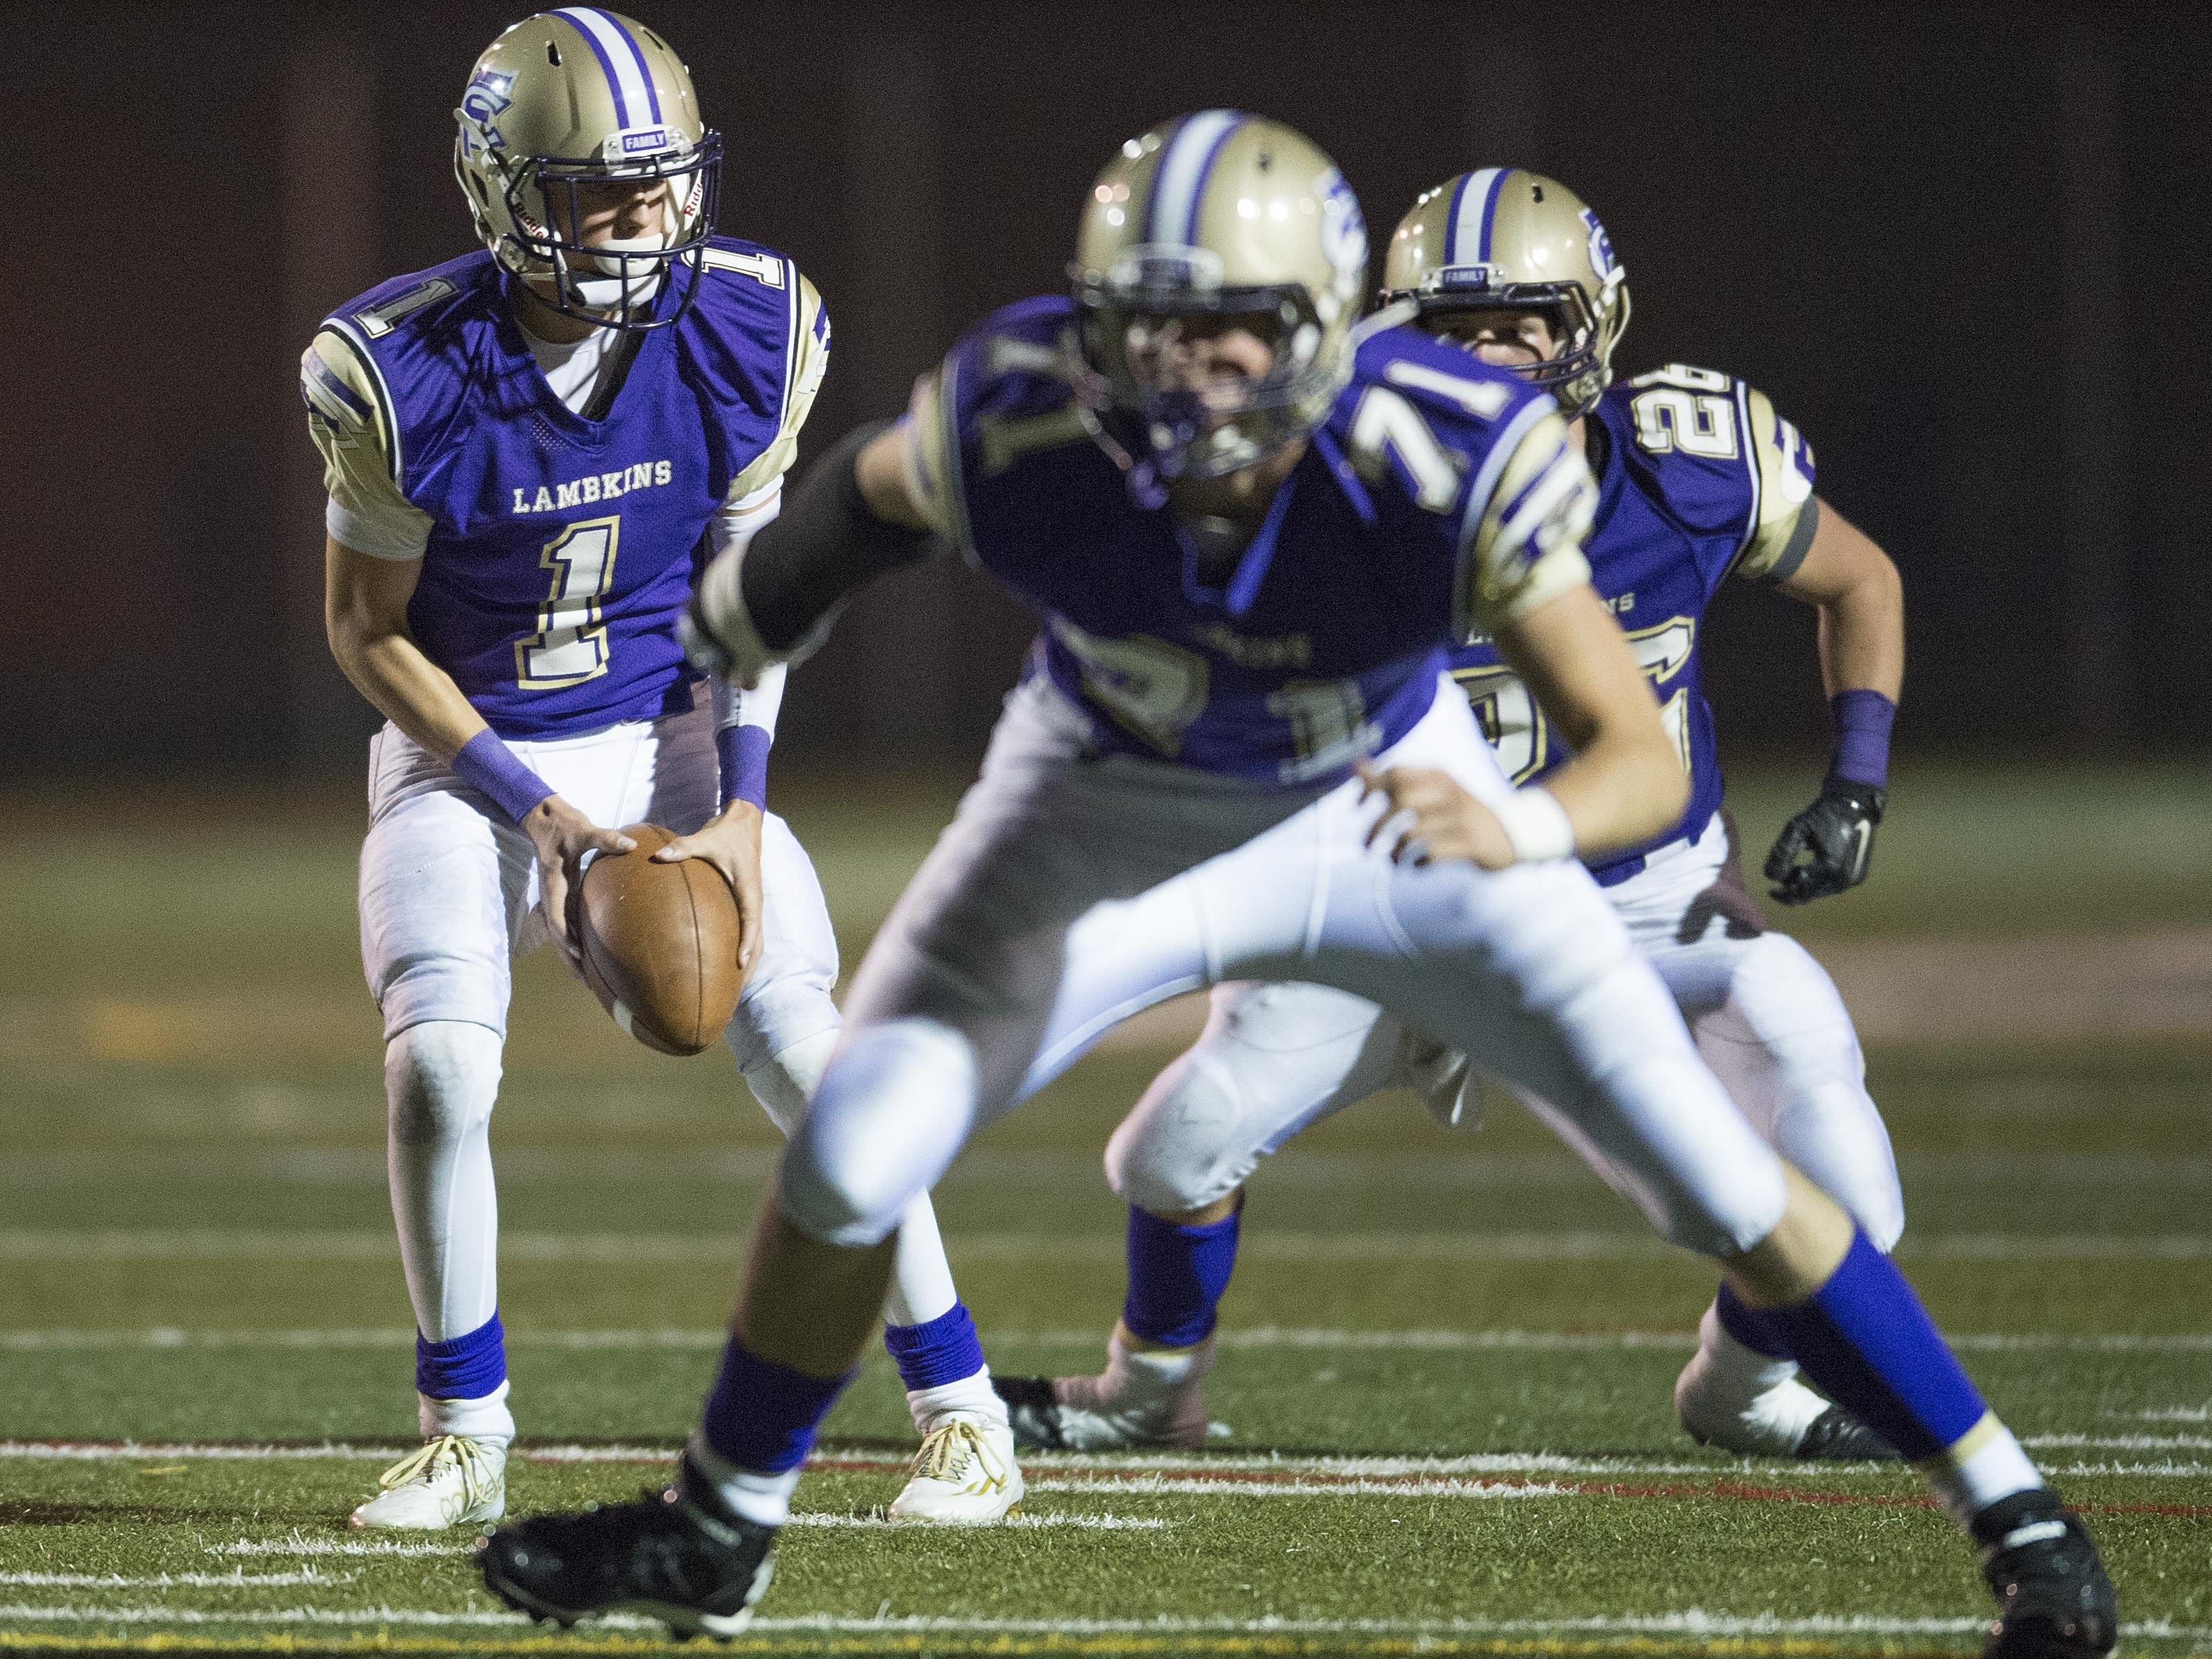 The Fort Collins High School football team hosts Broomfield at 7 p.m. Friday in a battle for the Northern Conference championship.